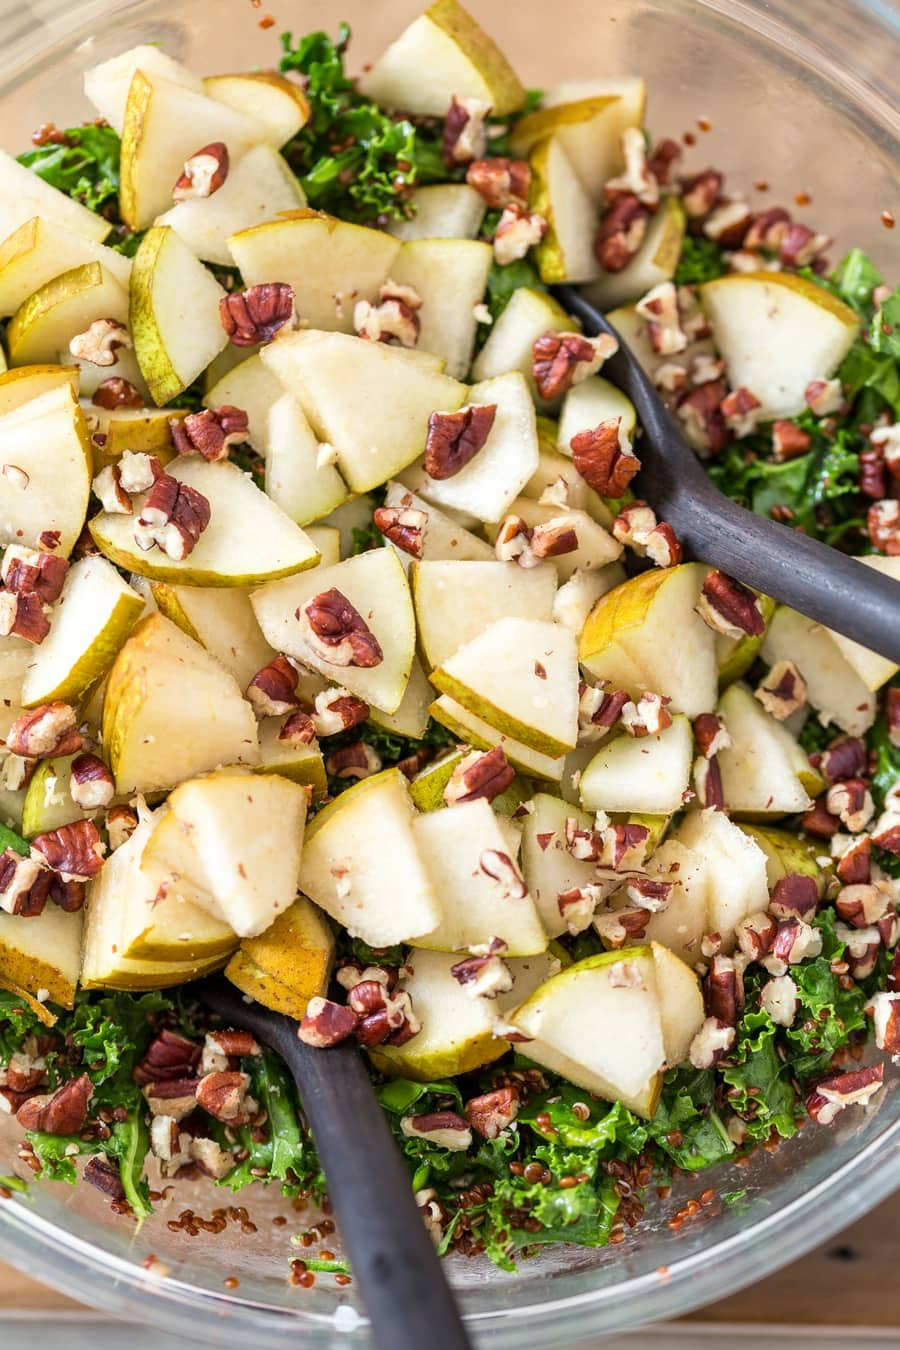 Pear and pecans added to kale salad.